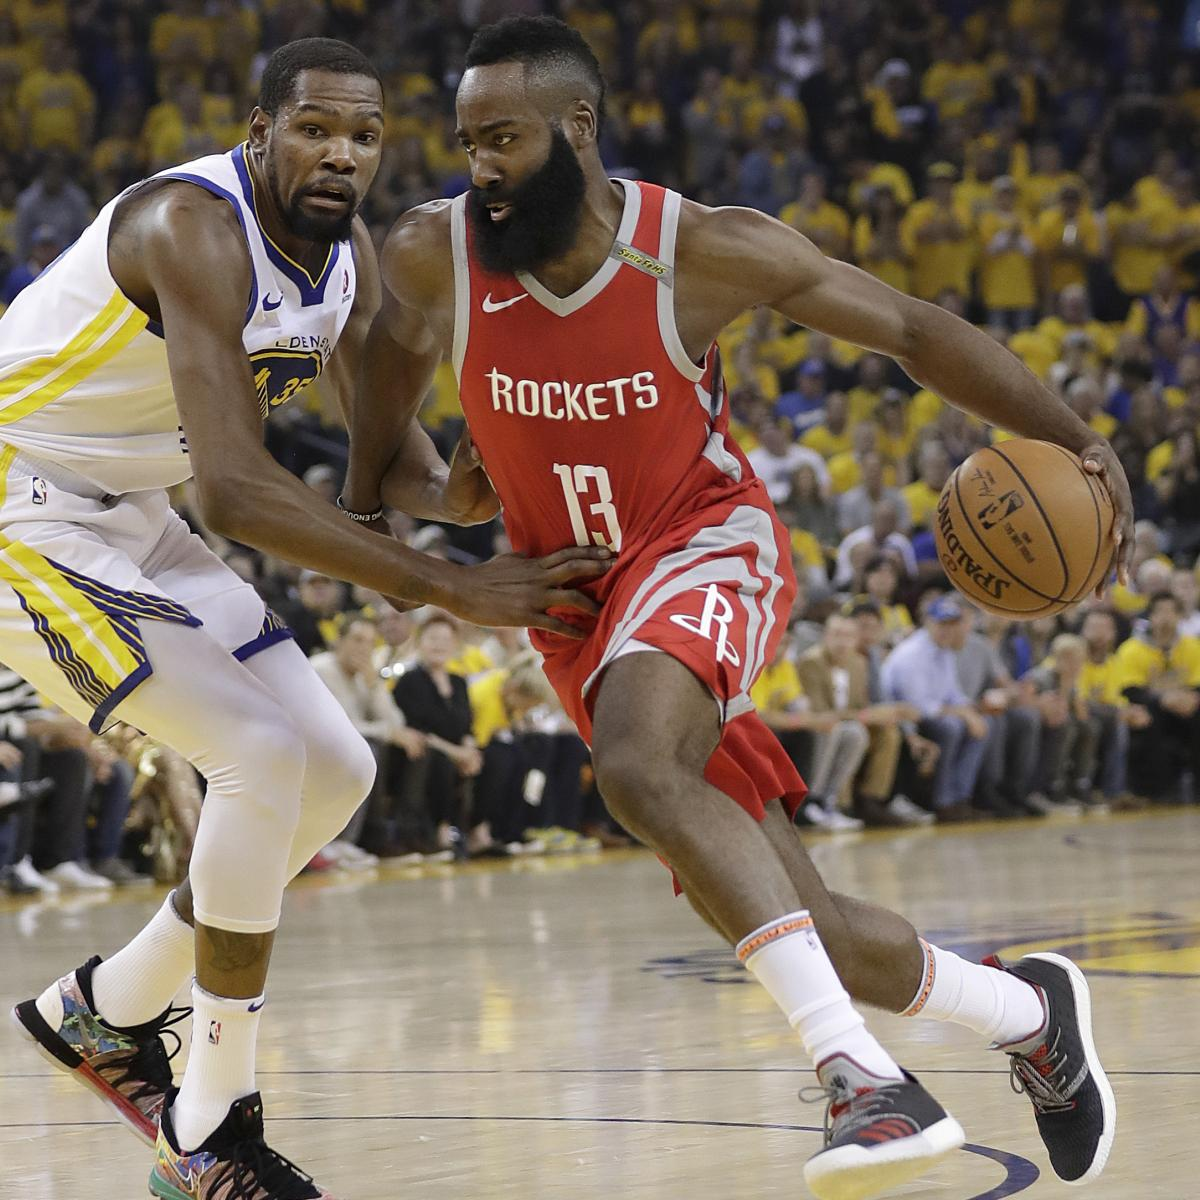 Rockets And The Warriors Game: Warriors Vs. Rockets Game 7 Odds: Golden State Opens As 5